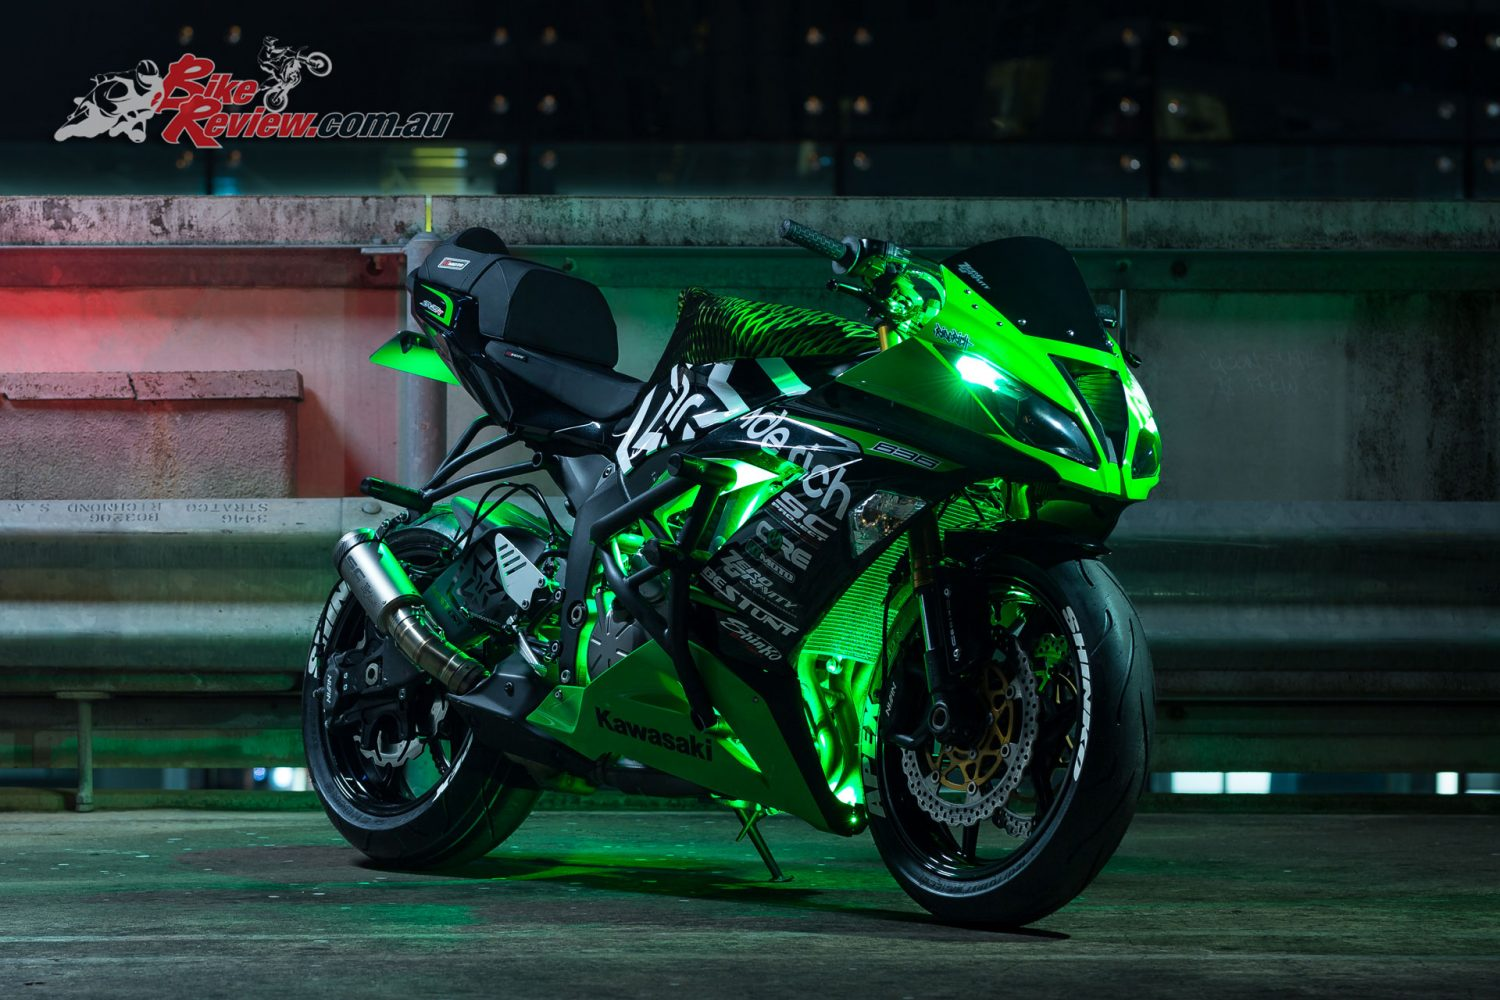 Kawasaki New Sports Bike